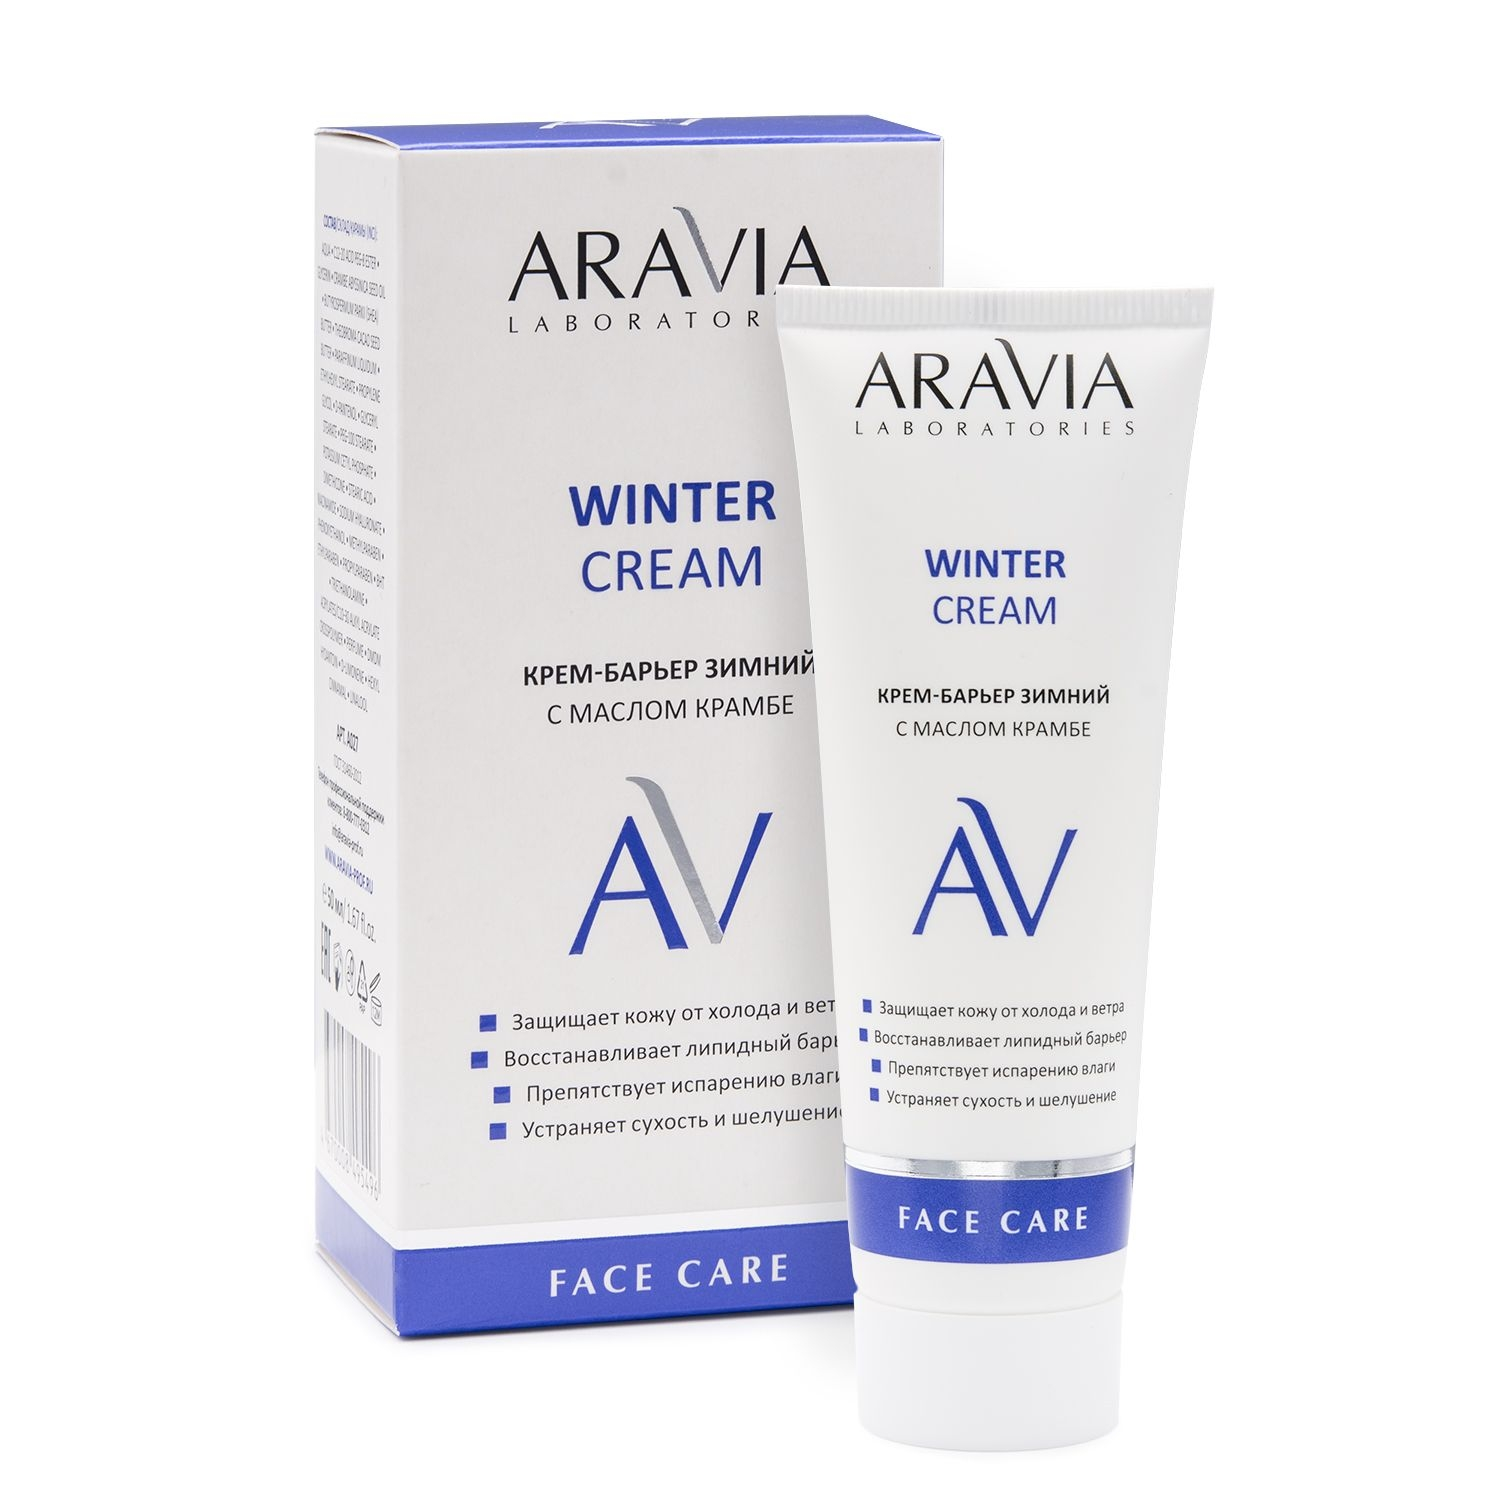 ARAVIA Крем-Барьер Winter Cream Зимний c Маслом Крамбе, 50 мл